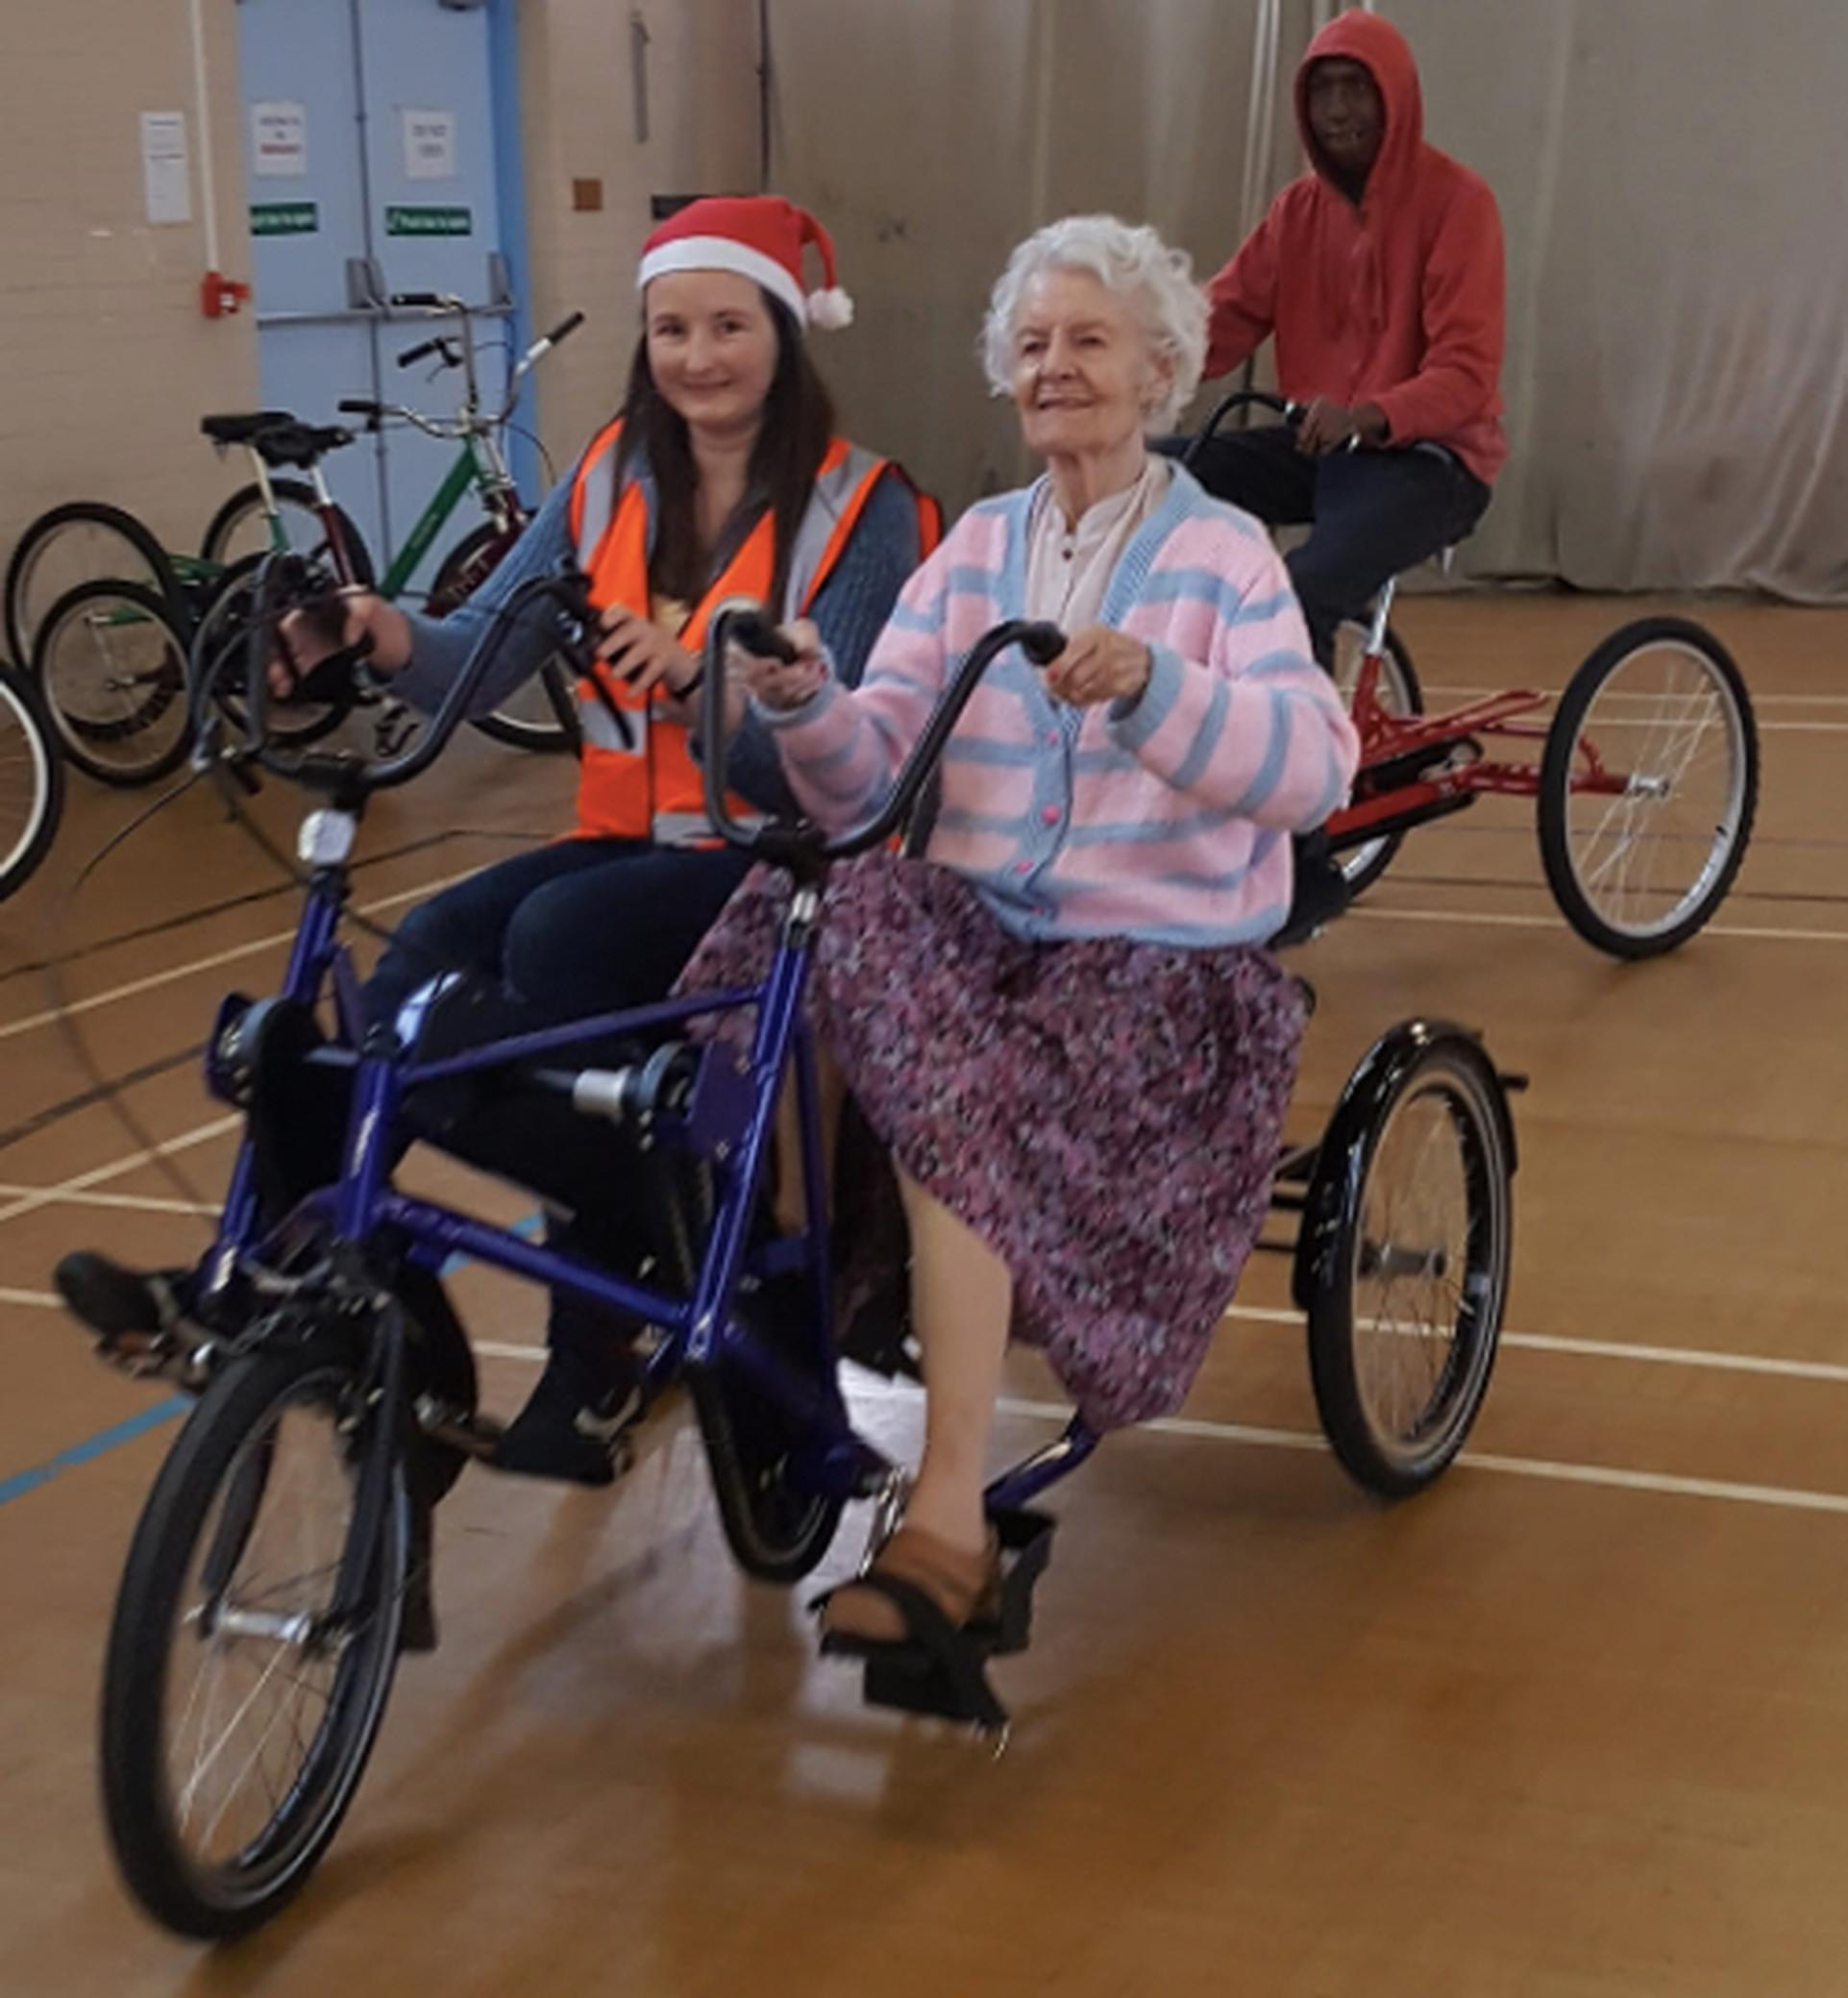 Cycling Grants London has enabled Wheels for Wellbeing to offer rides in side-by-side tandems for people with dementia